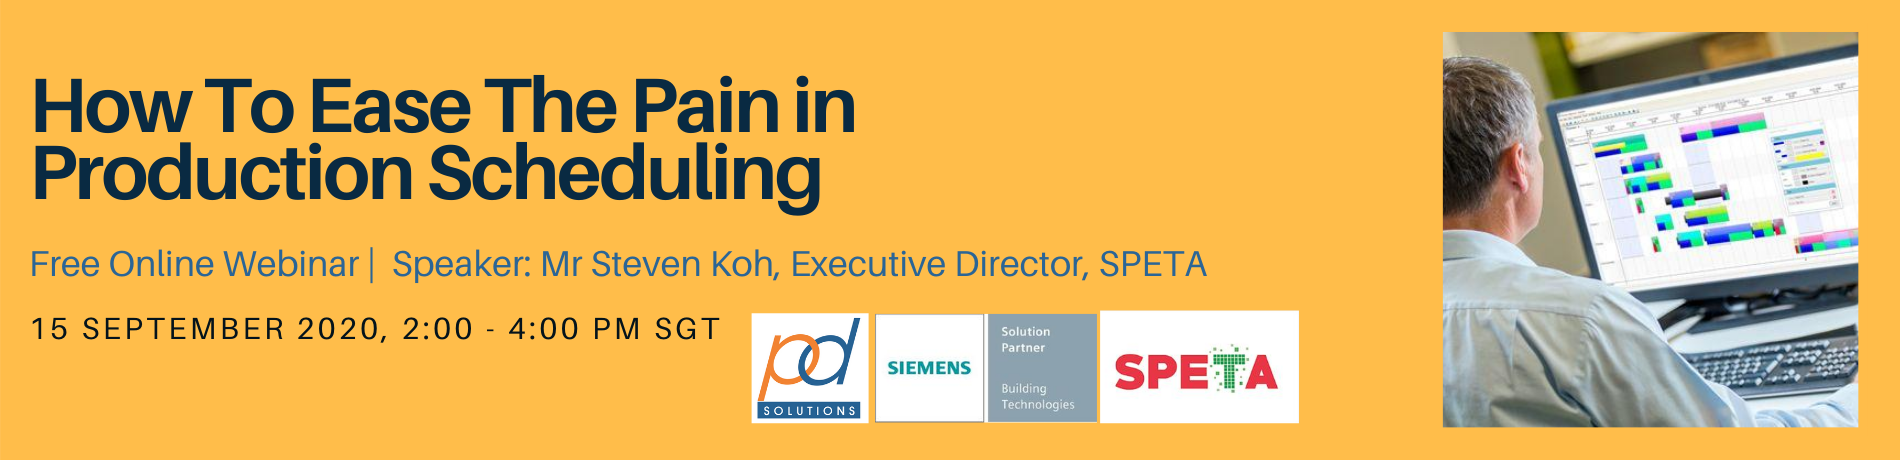 Production Scheduling Webinar with Siemens OpCenter and SPETA 2